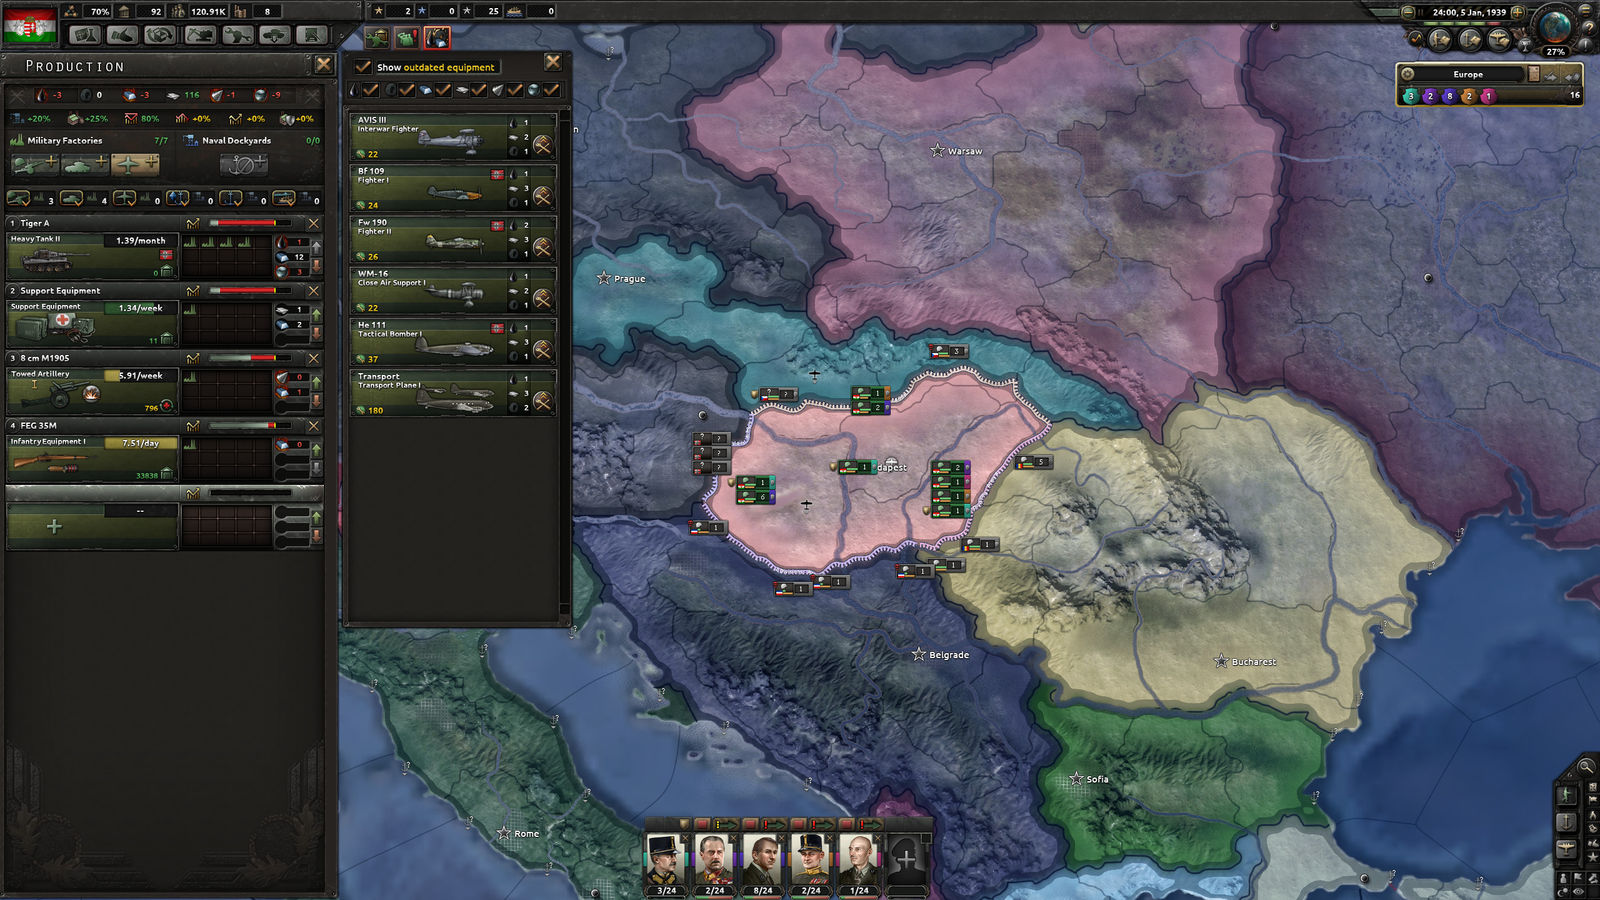 Hearts of Iron IV 4: Death or Dishonor (Steam) RU/CIS